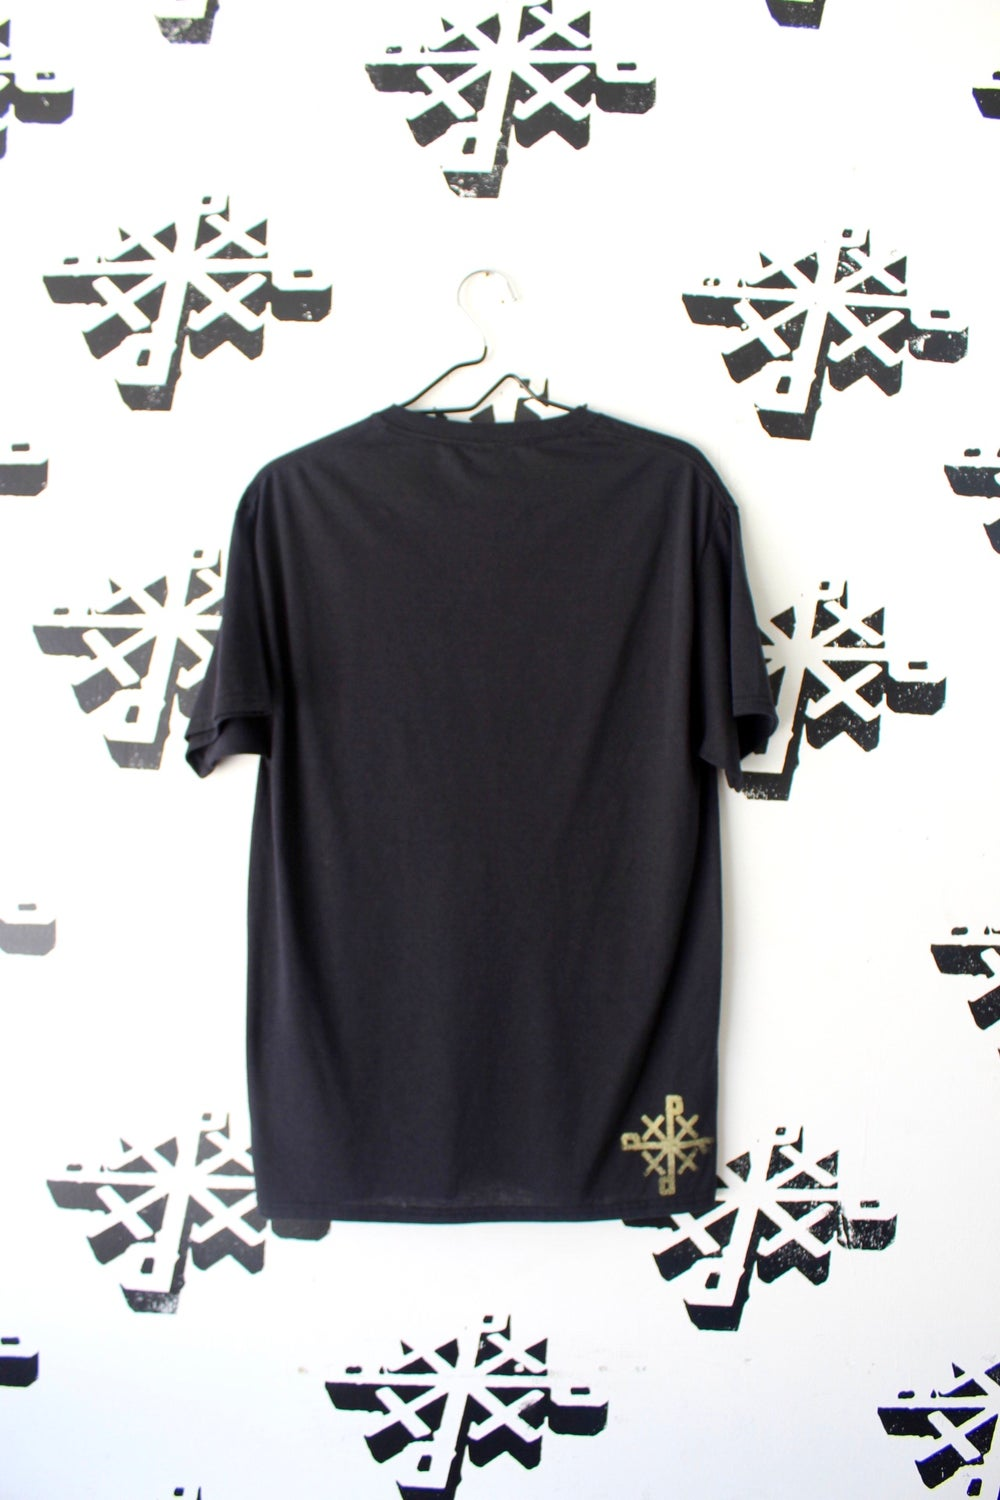 the movers and shakers tee in black